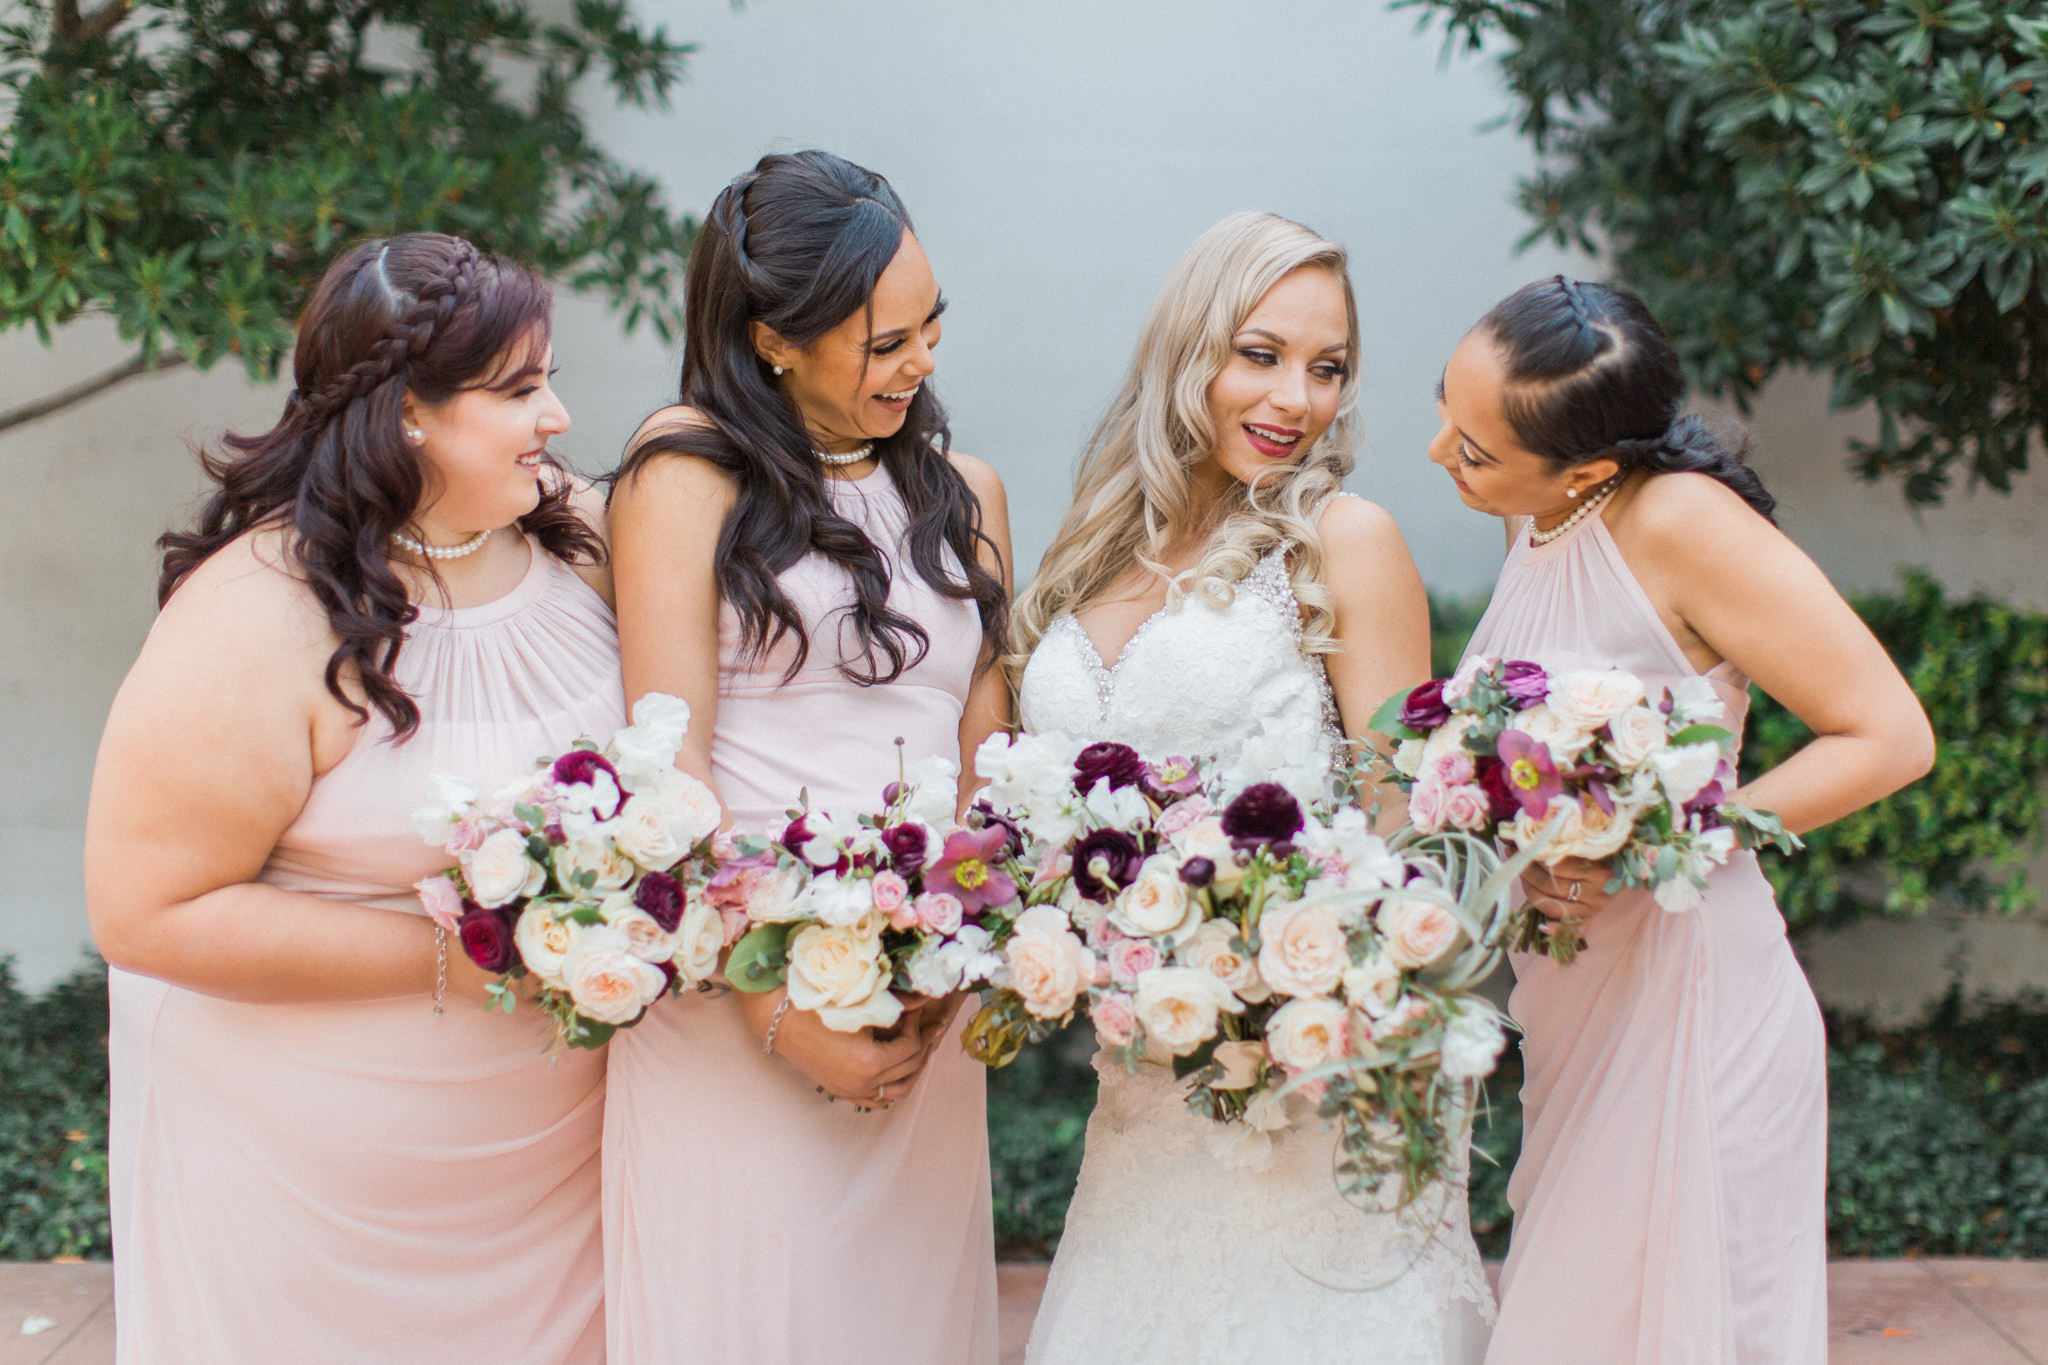 #weddingplannerlasvegas,#lasvegasweddingcoordinators,#weddingcoordinatorslasvegas,#weddingcoordinatorlasvegas,#lasvegasweddingplanner #desirableeventsbydesi #Tropicanawedding #wedding, #love, #lovewins, #samesexwedding, #gaywedding, #tropicana, #lasvegaswedding, #weddinglasvegas, #weddingplannerslasvegas, #lasvegasweddingplanners, # layersoflovely, #lasvegaswedding, #susieandwill, #rusticwedding, #wedding, #historic5thstreetschool, #downtownlasvegas, #historic5thstreetschoolweddings, #lasvegasweddings,